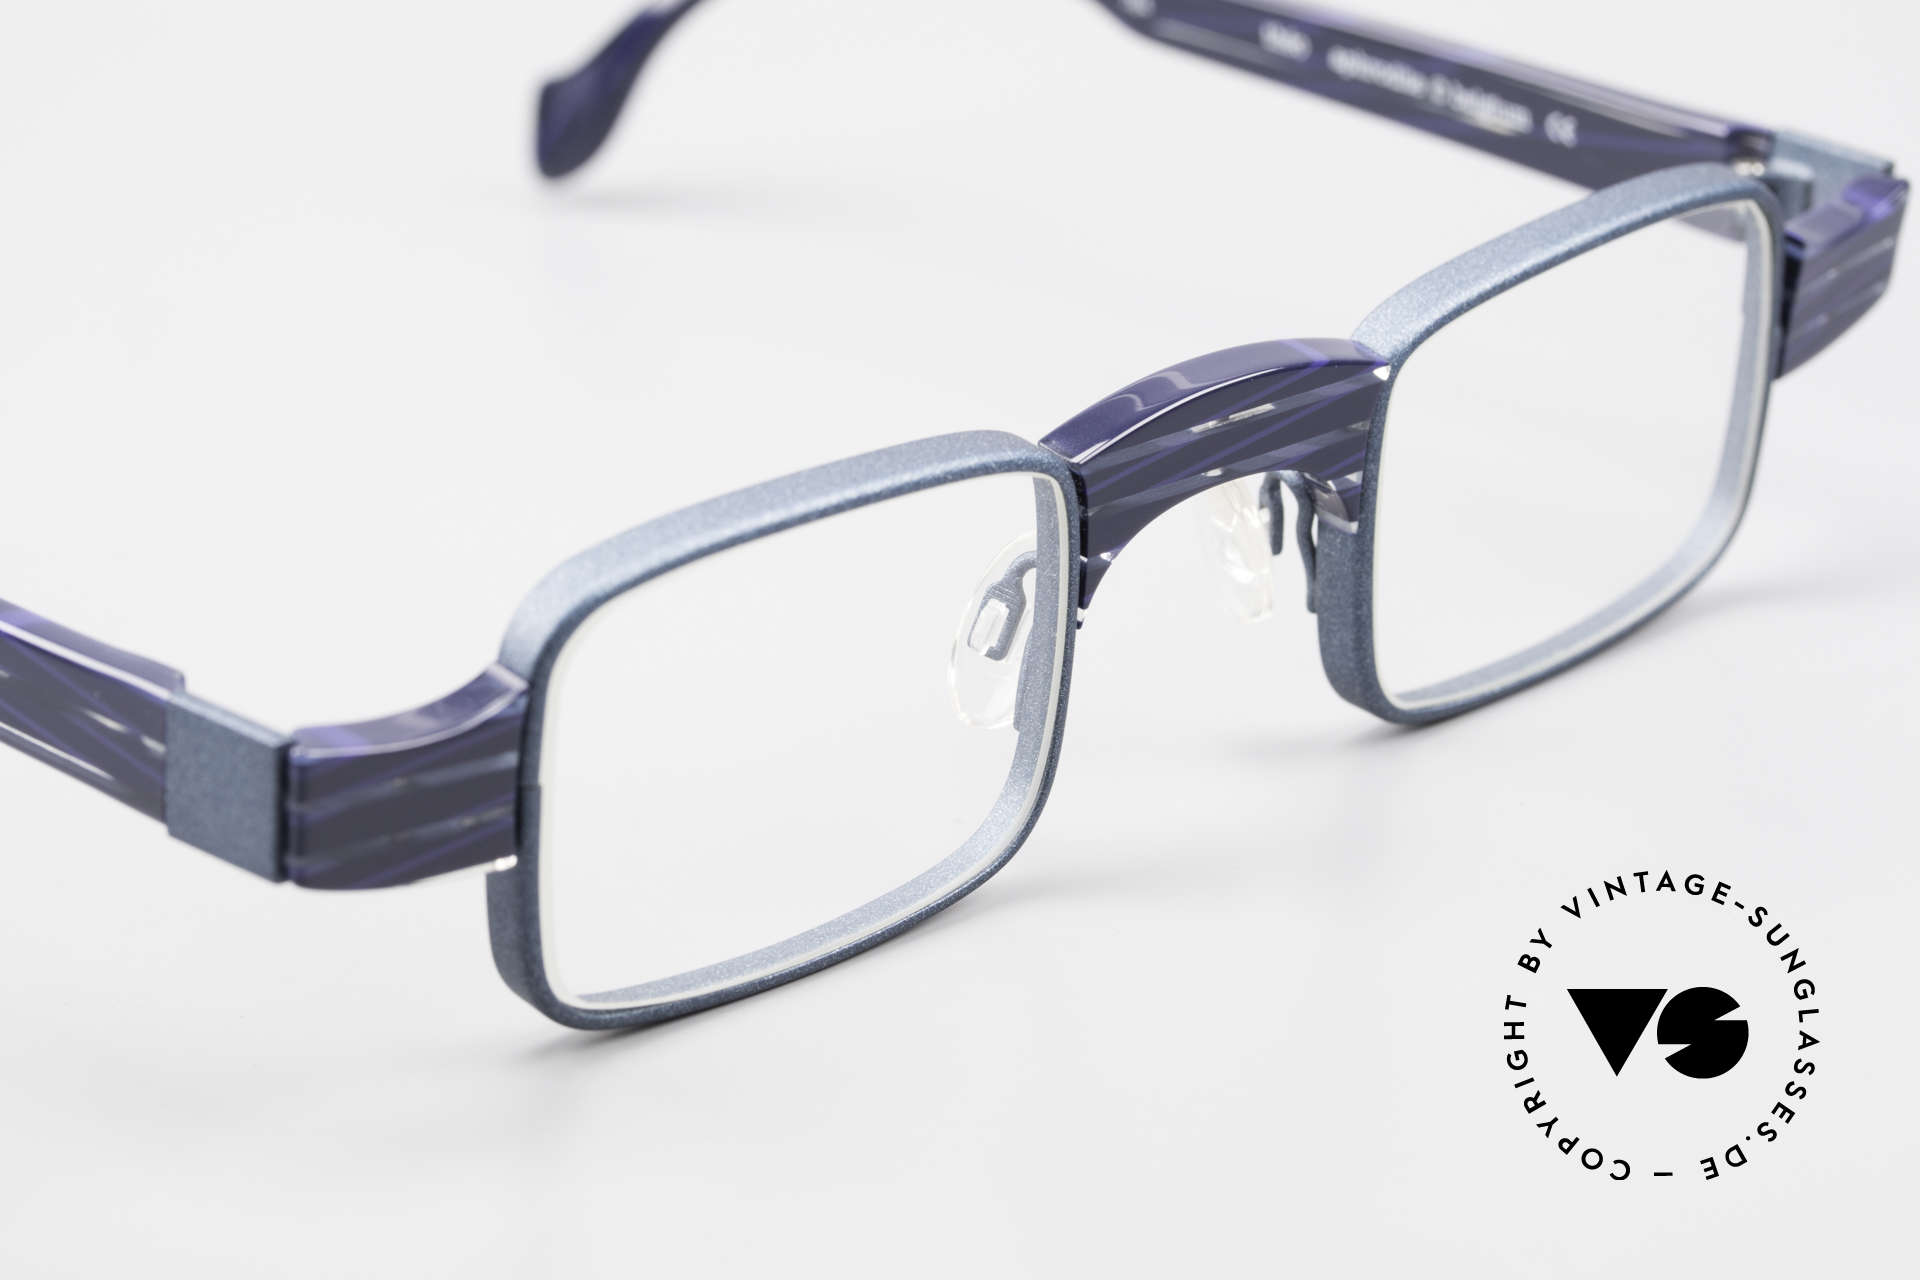 Theo Belgium Aphrodite Vintage Combi Designer Specs, the name says it all: APHRODITE = Greek goddess of love, Made for Women